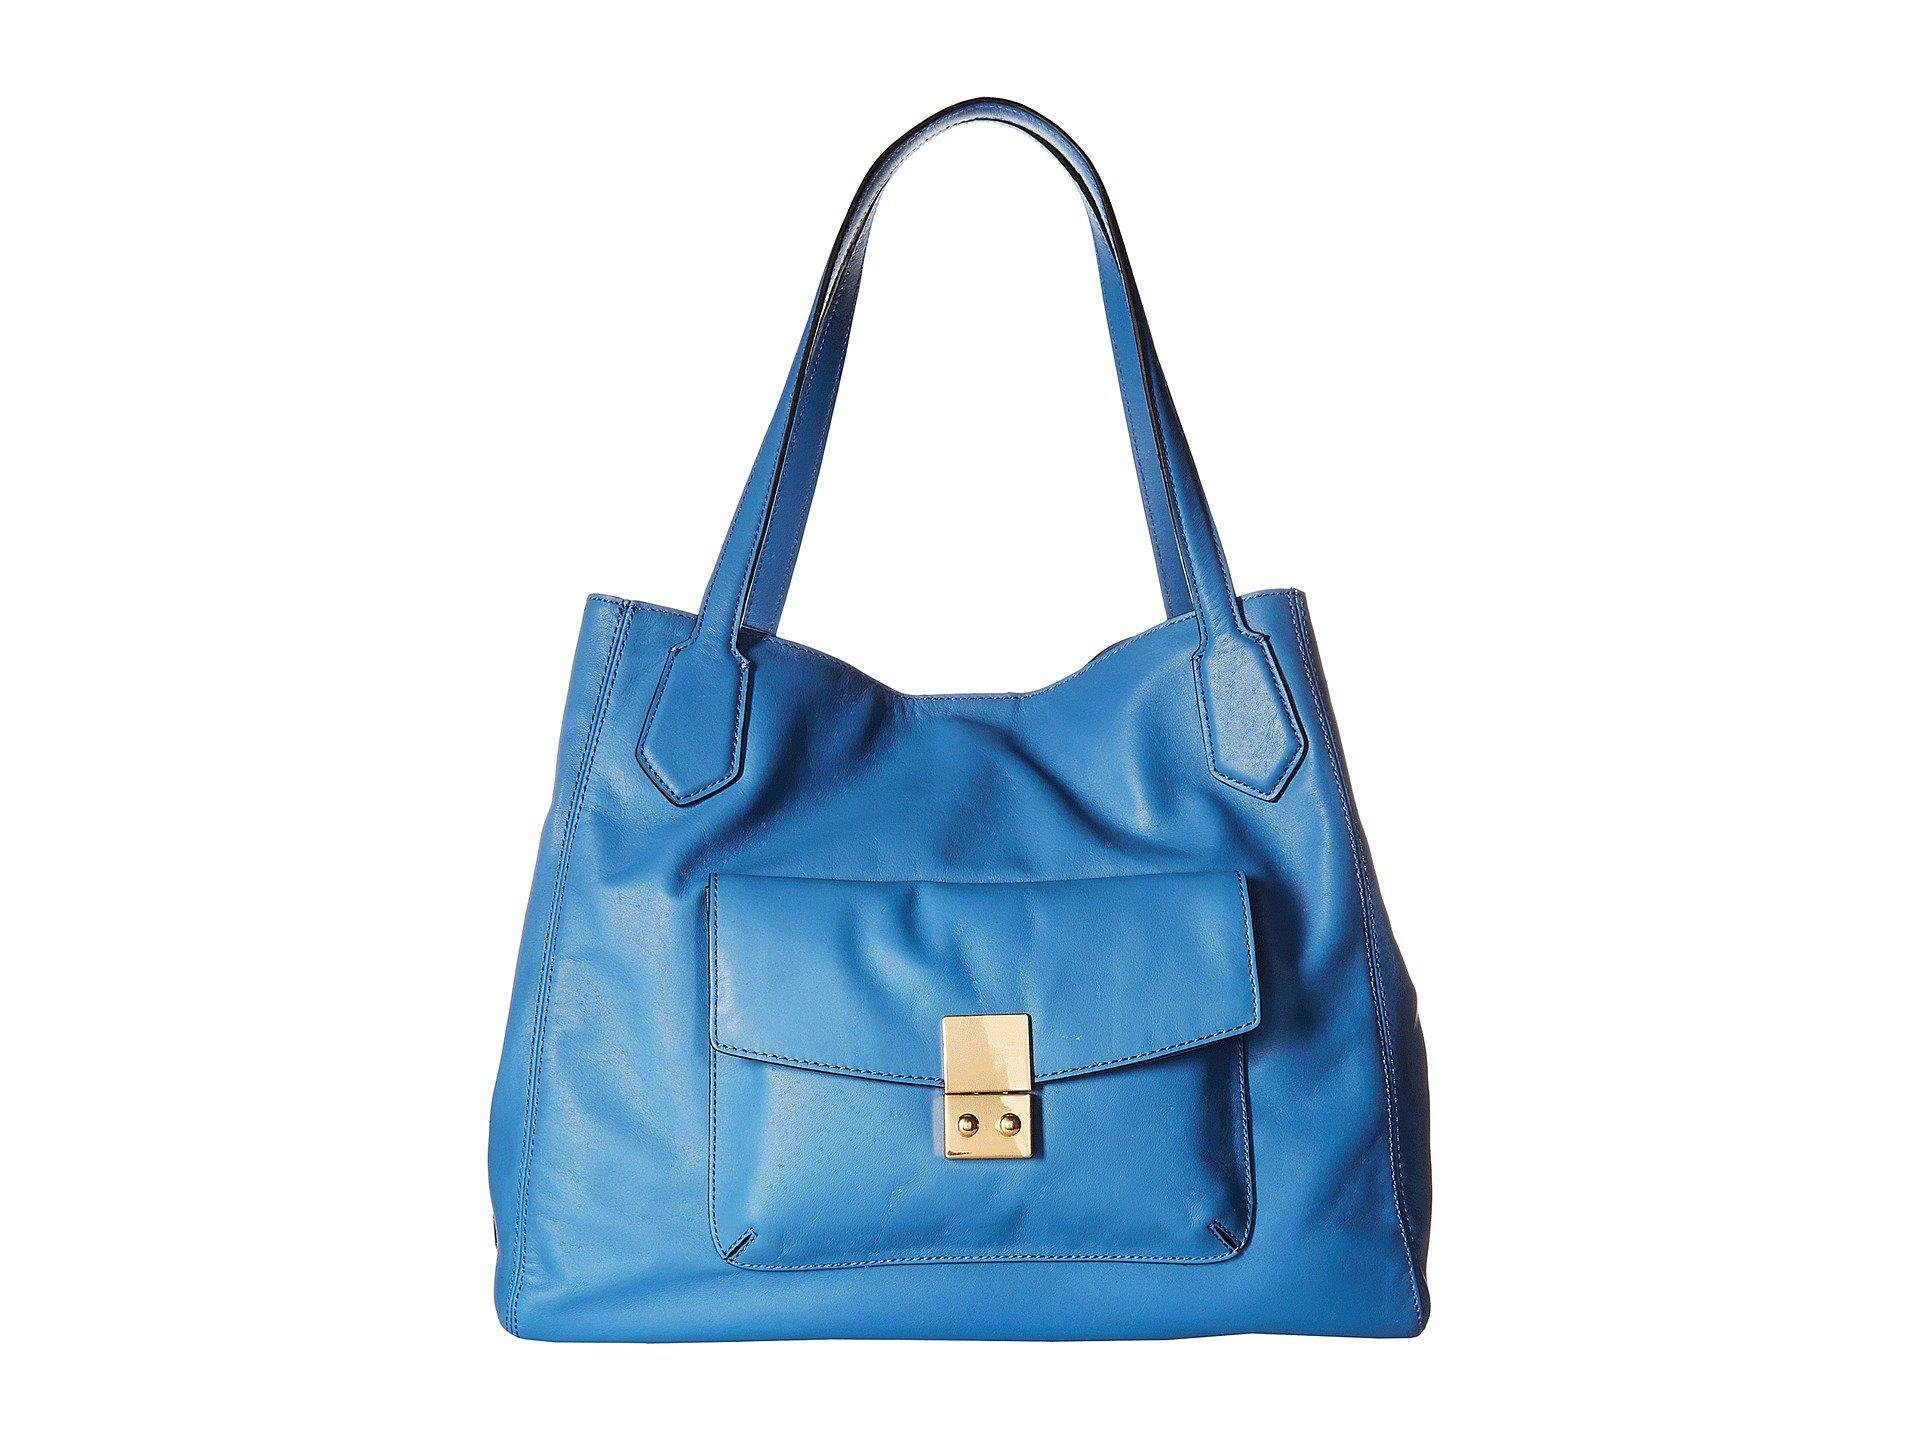 64be7ace1d61 Lyst - Cole Haan Allanna Work Tote in Blue